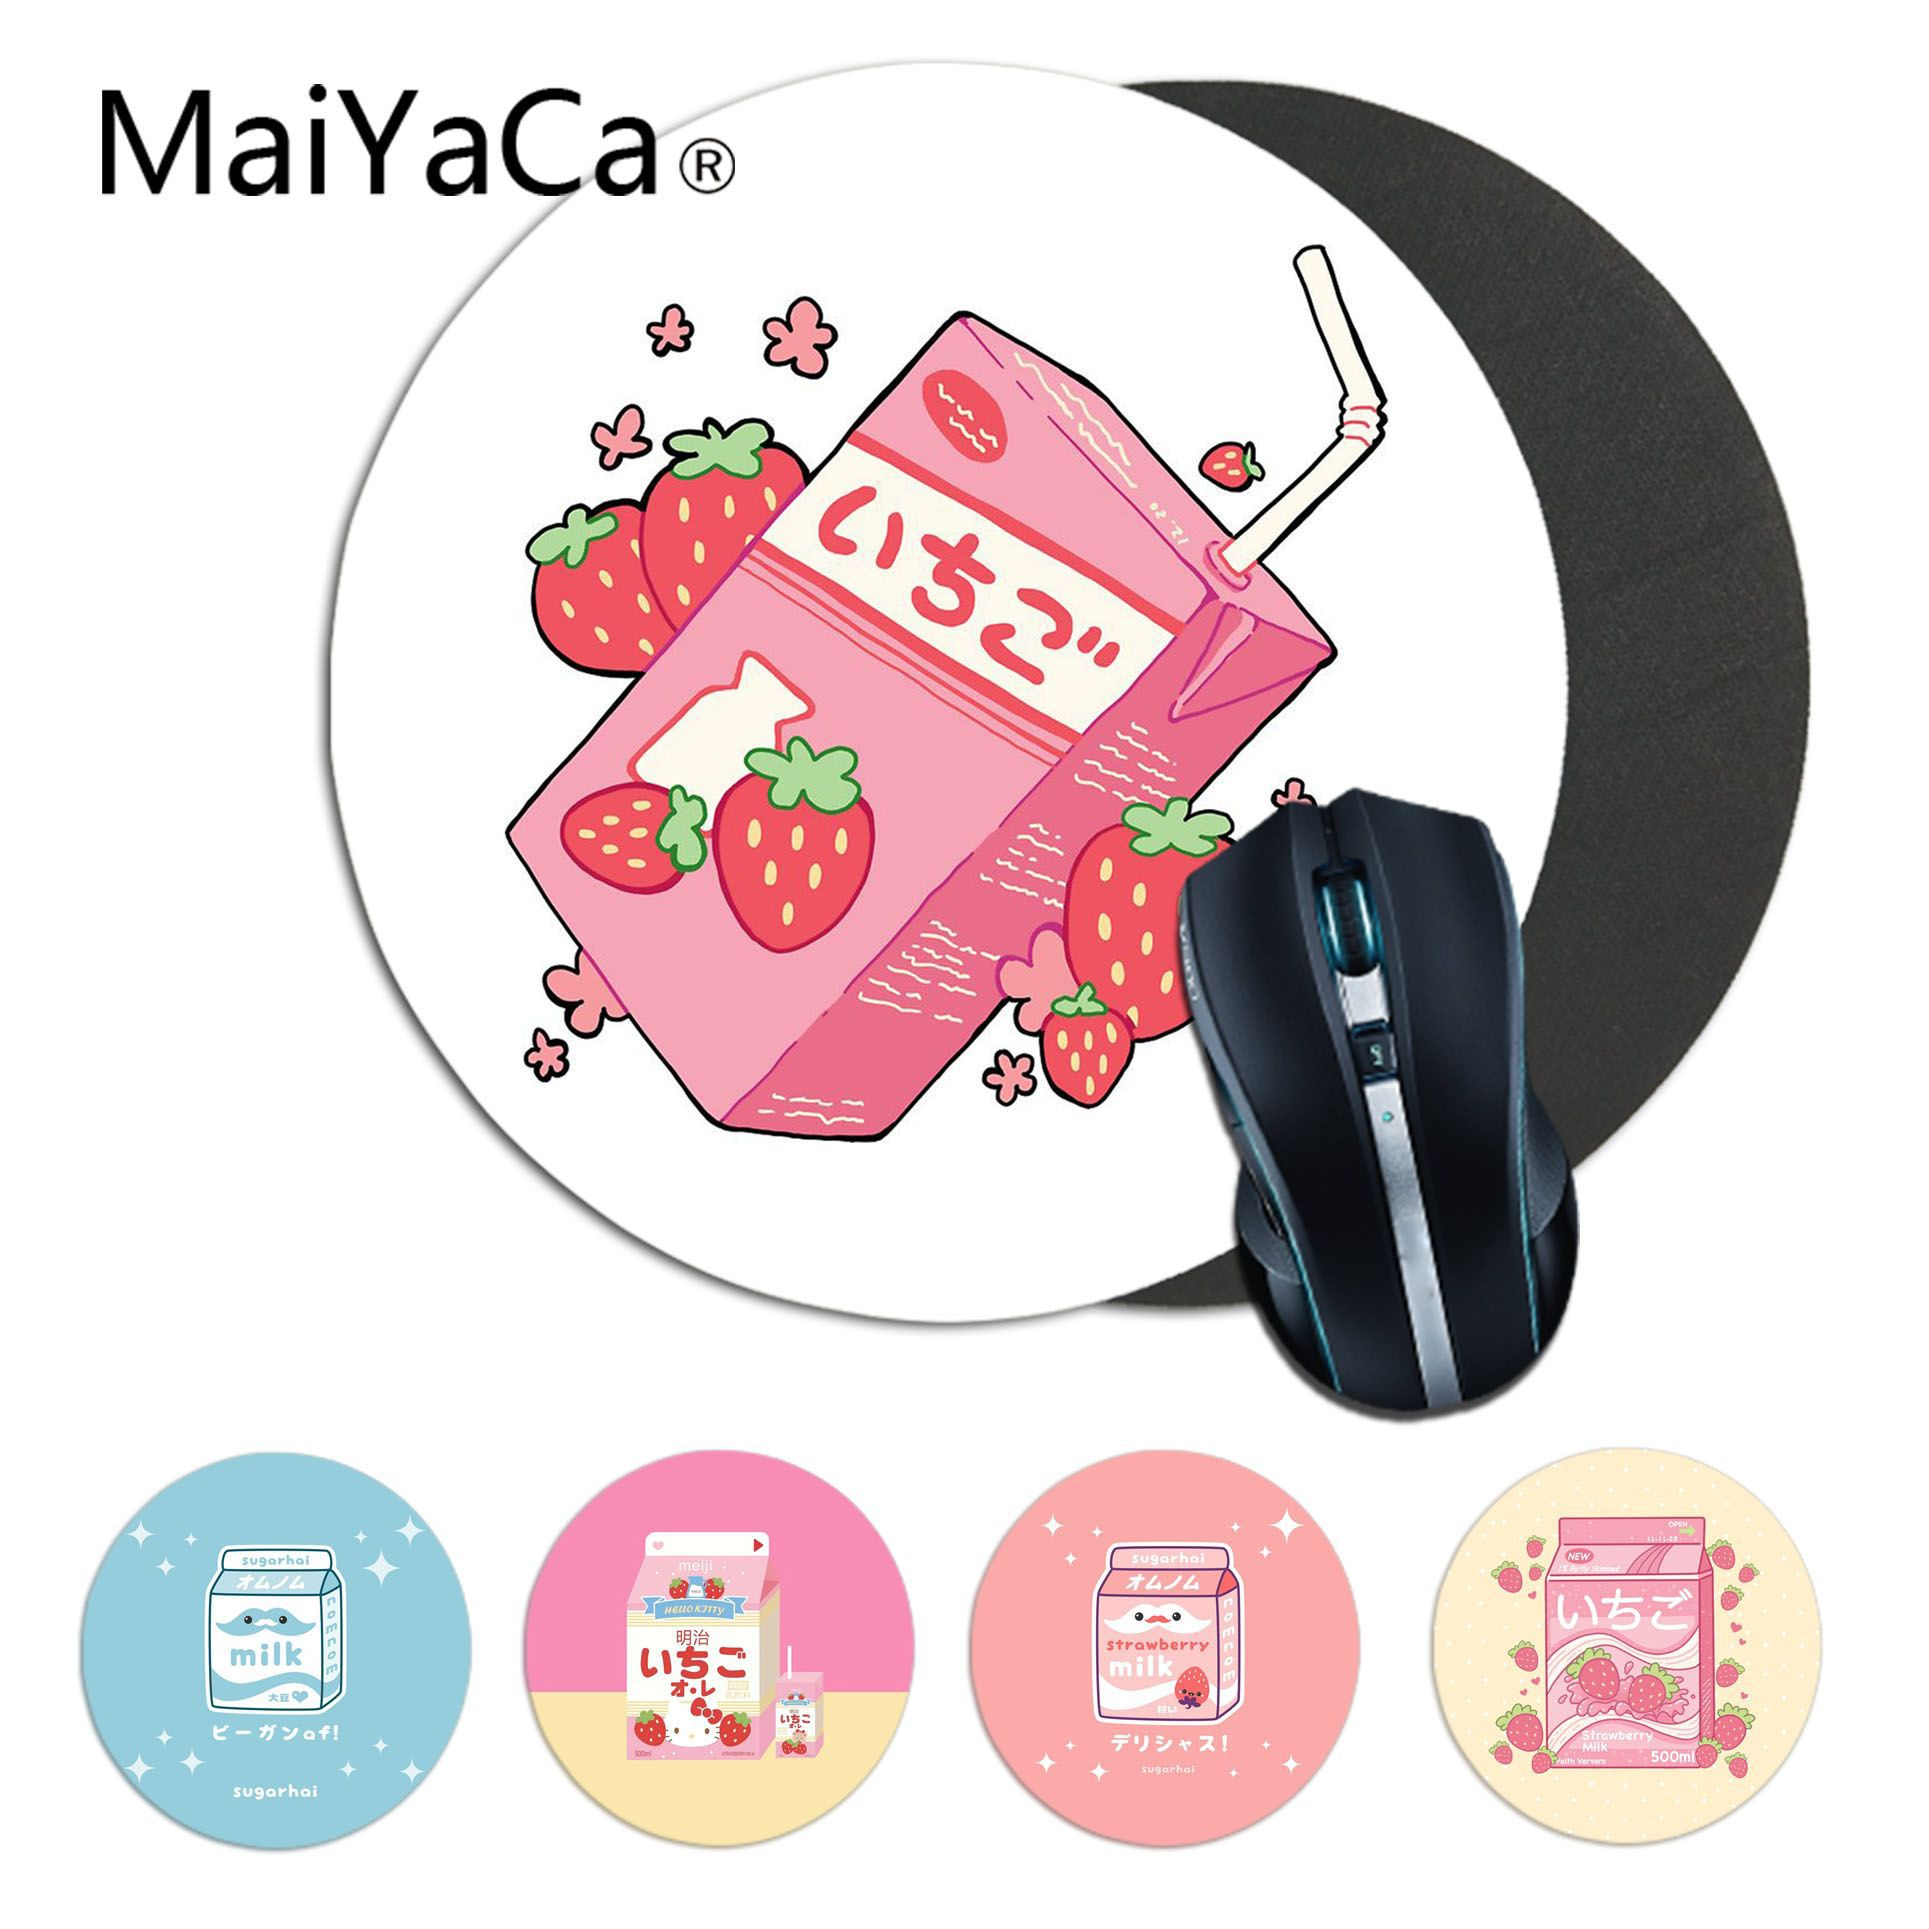 MaiYaCa Kawaii Japanese Strawberry Milk pattern Rubber PC Computer Gaming mousepad Rug For PC Laptop Notebook gamer desk pad(China)